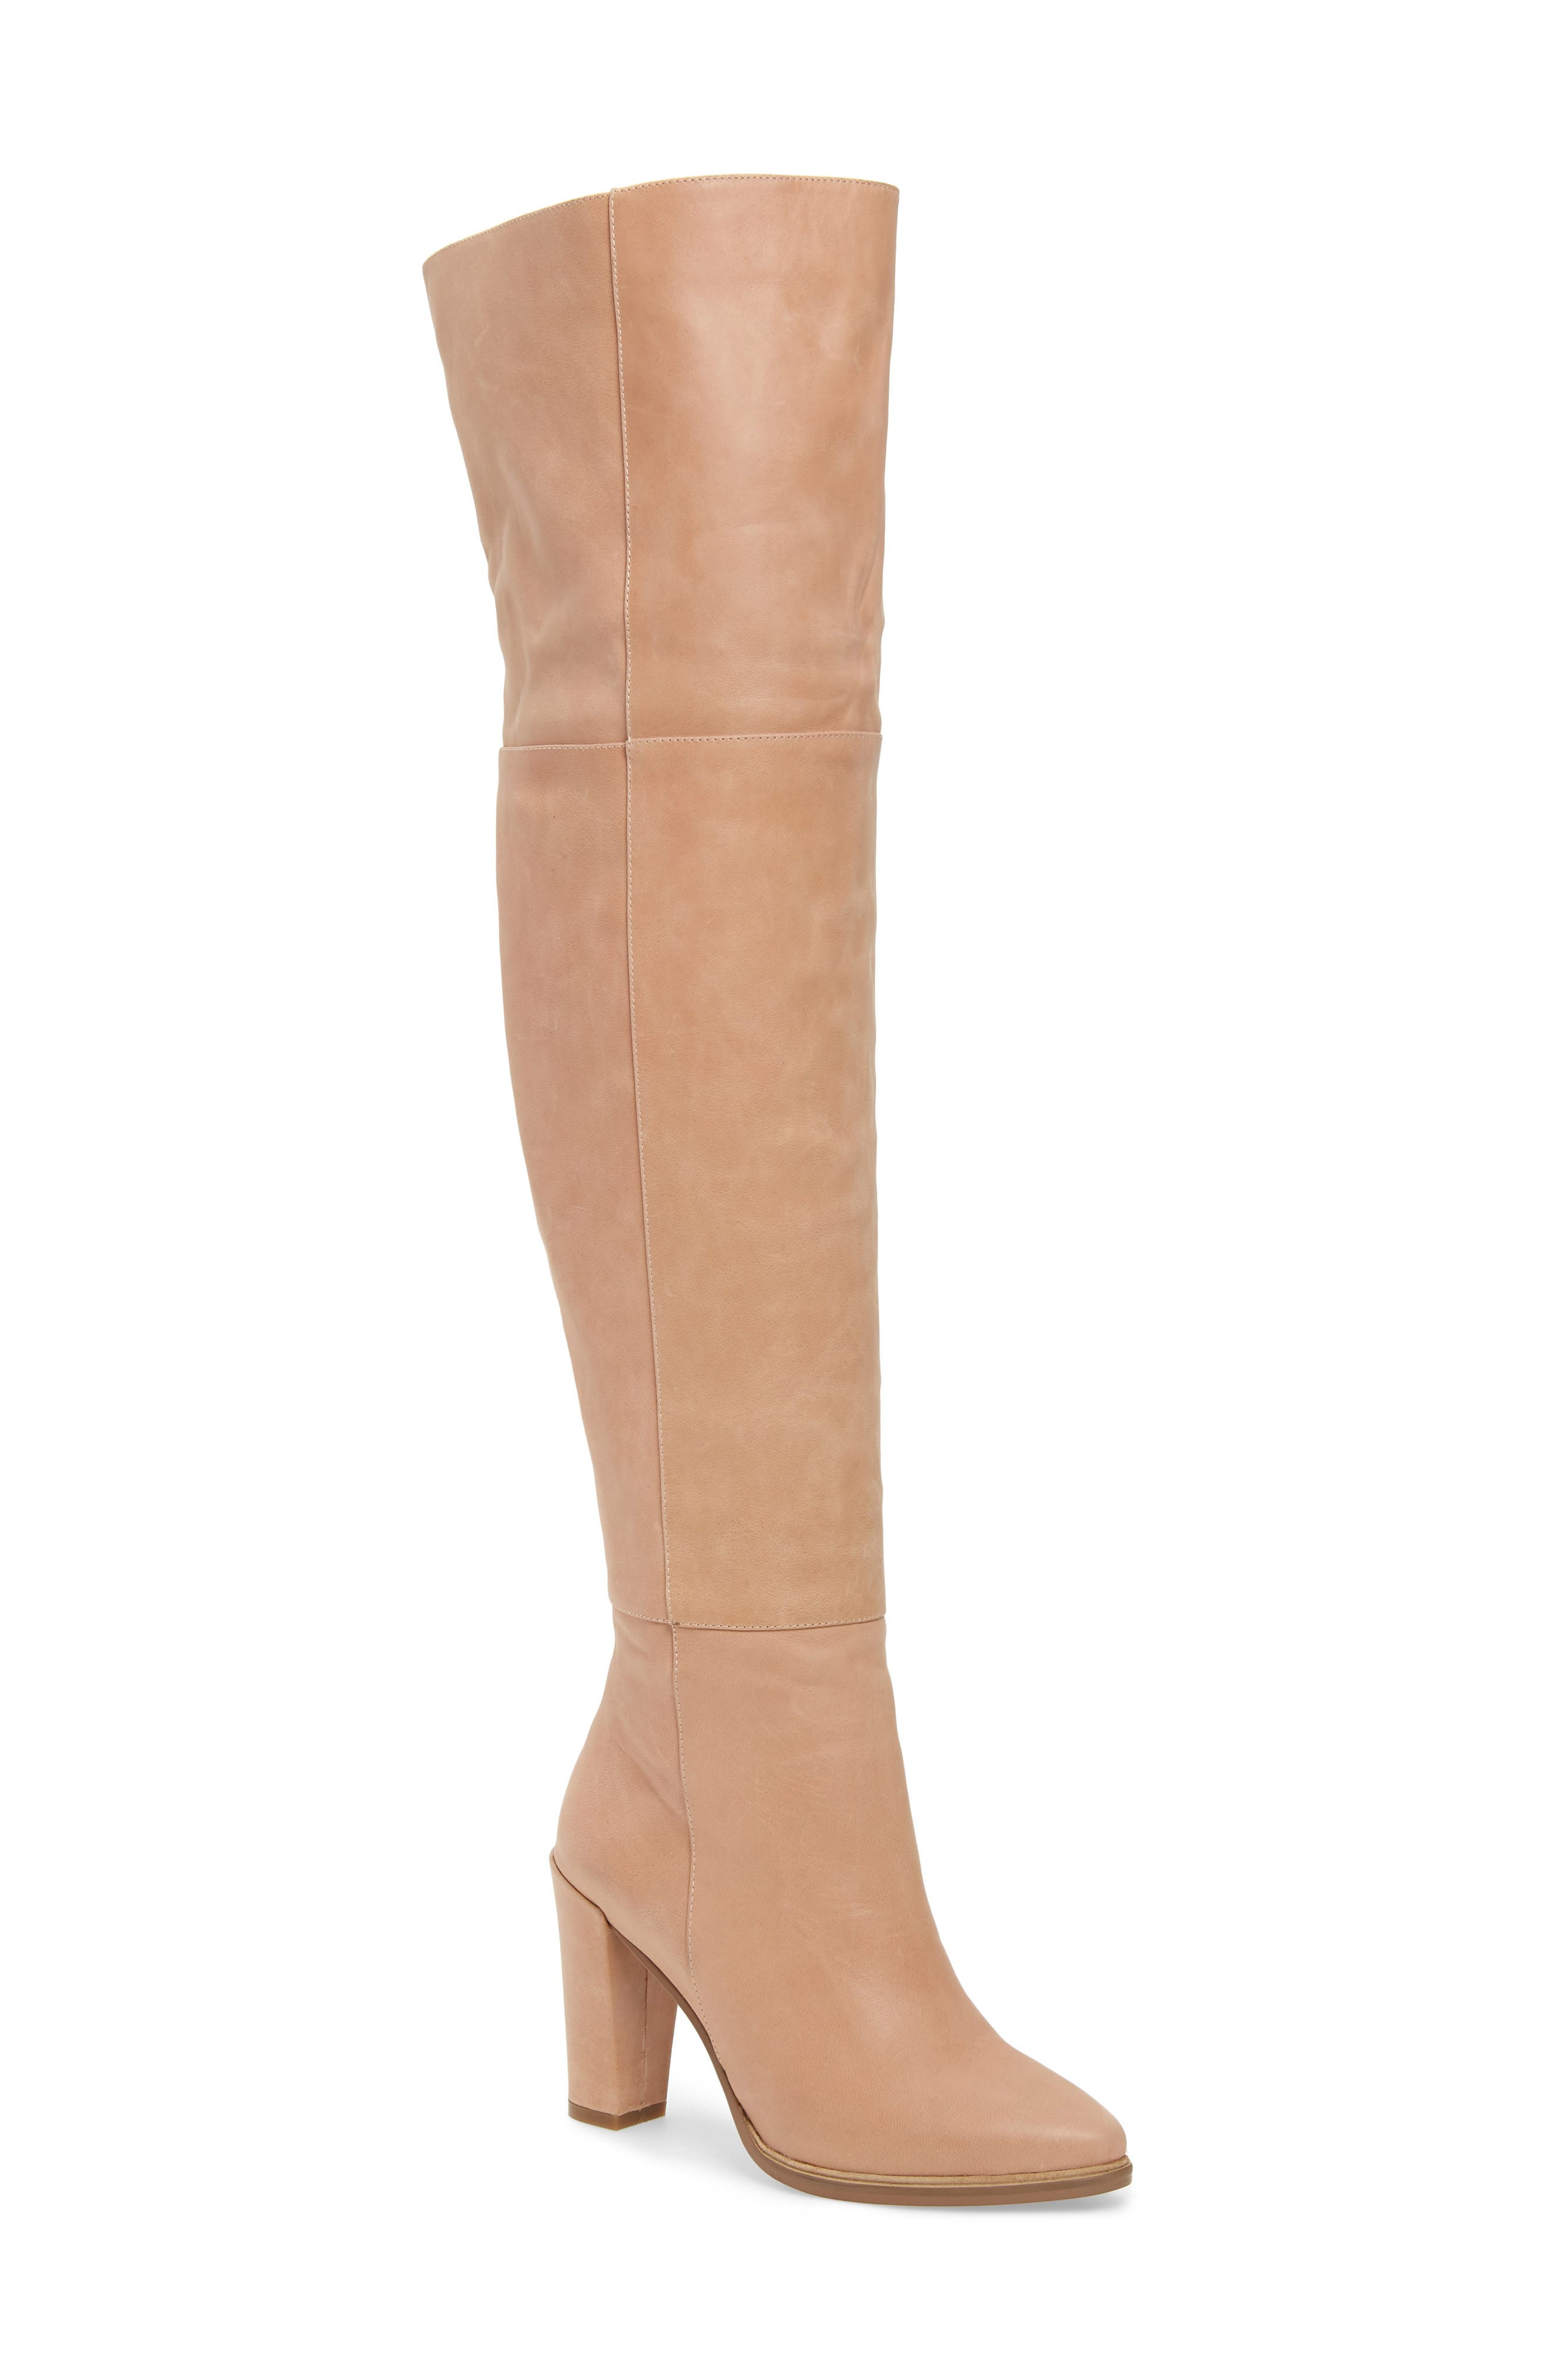 ALIAS MAE Alla Over The Knee Boot in Blush Leather